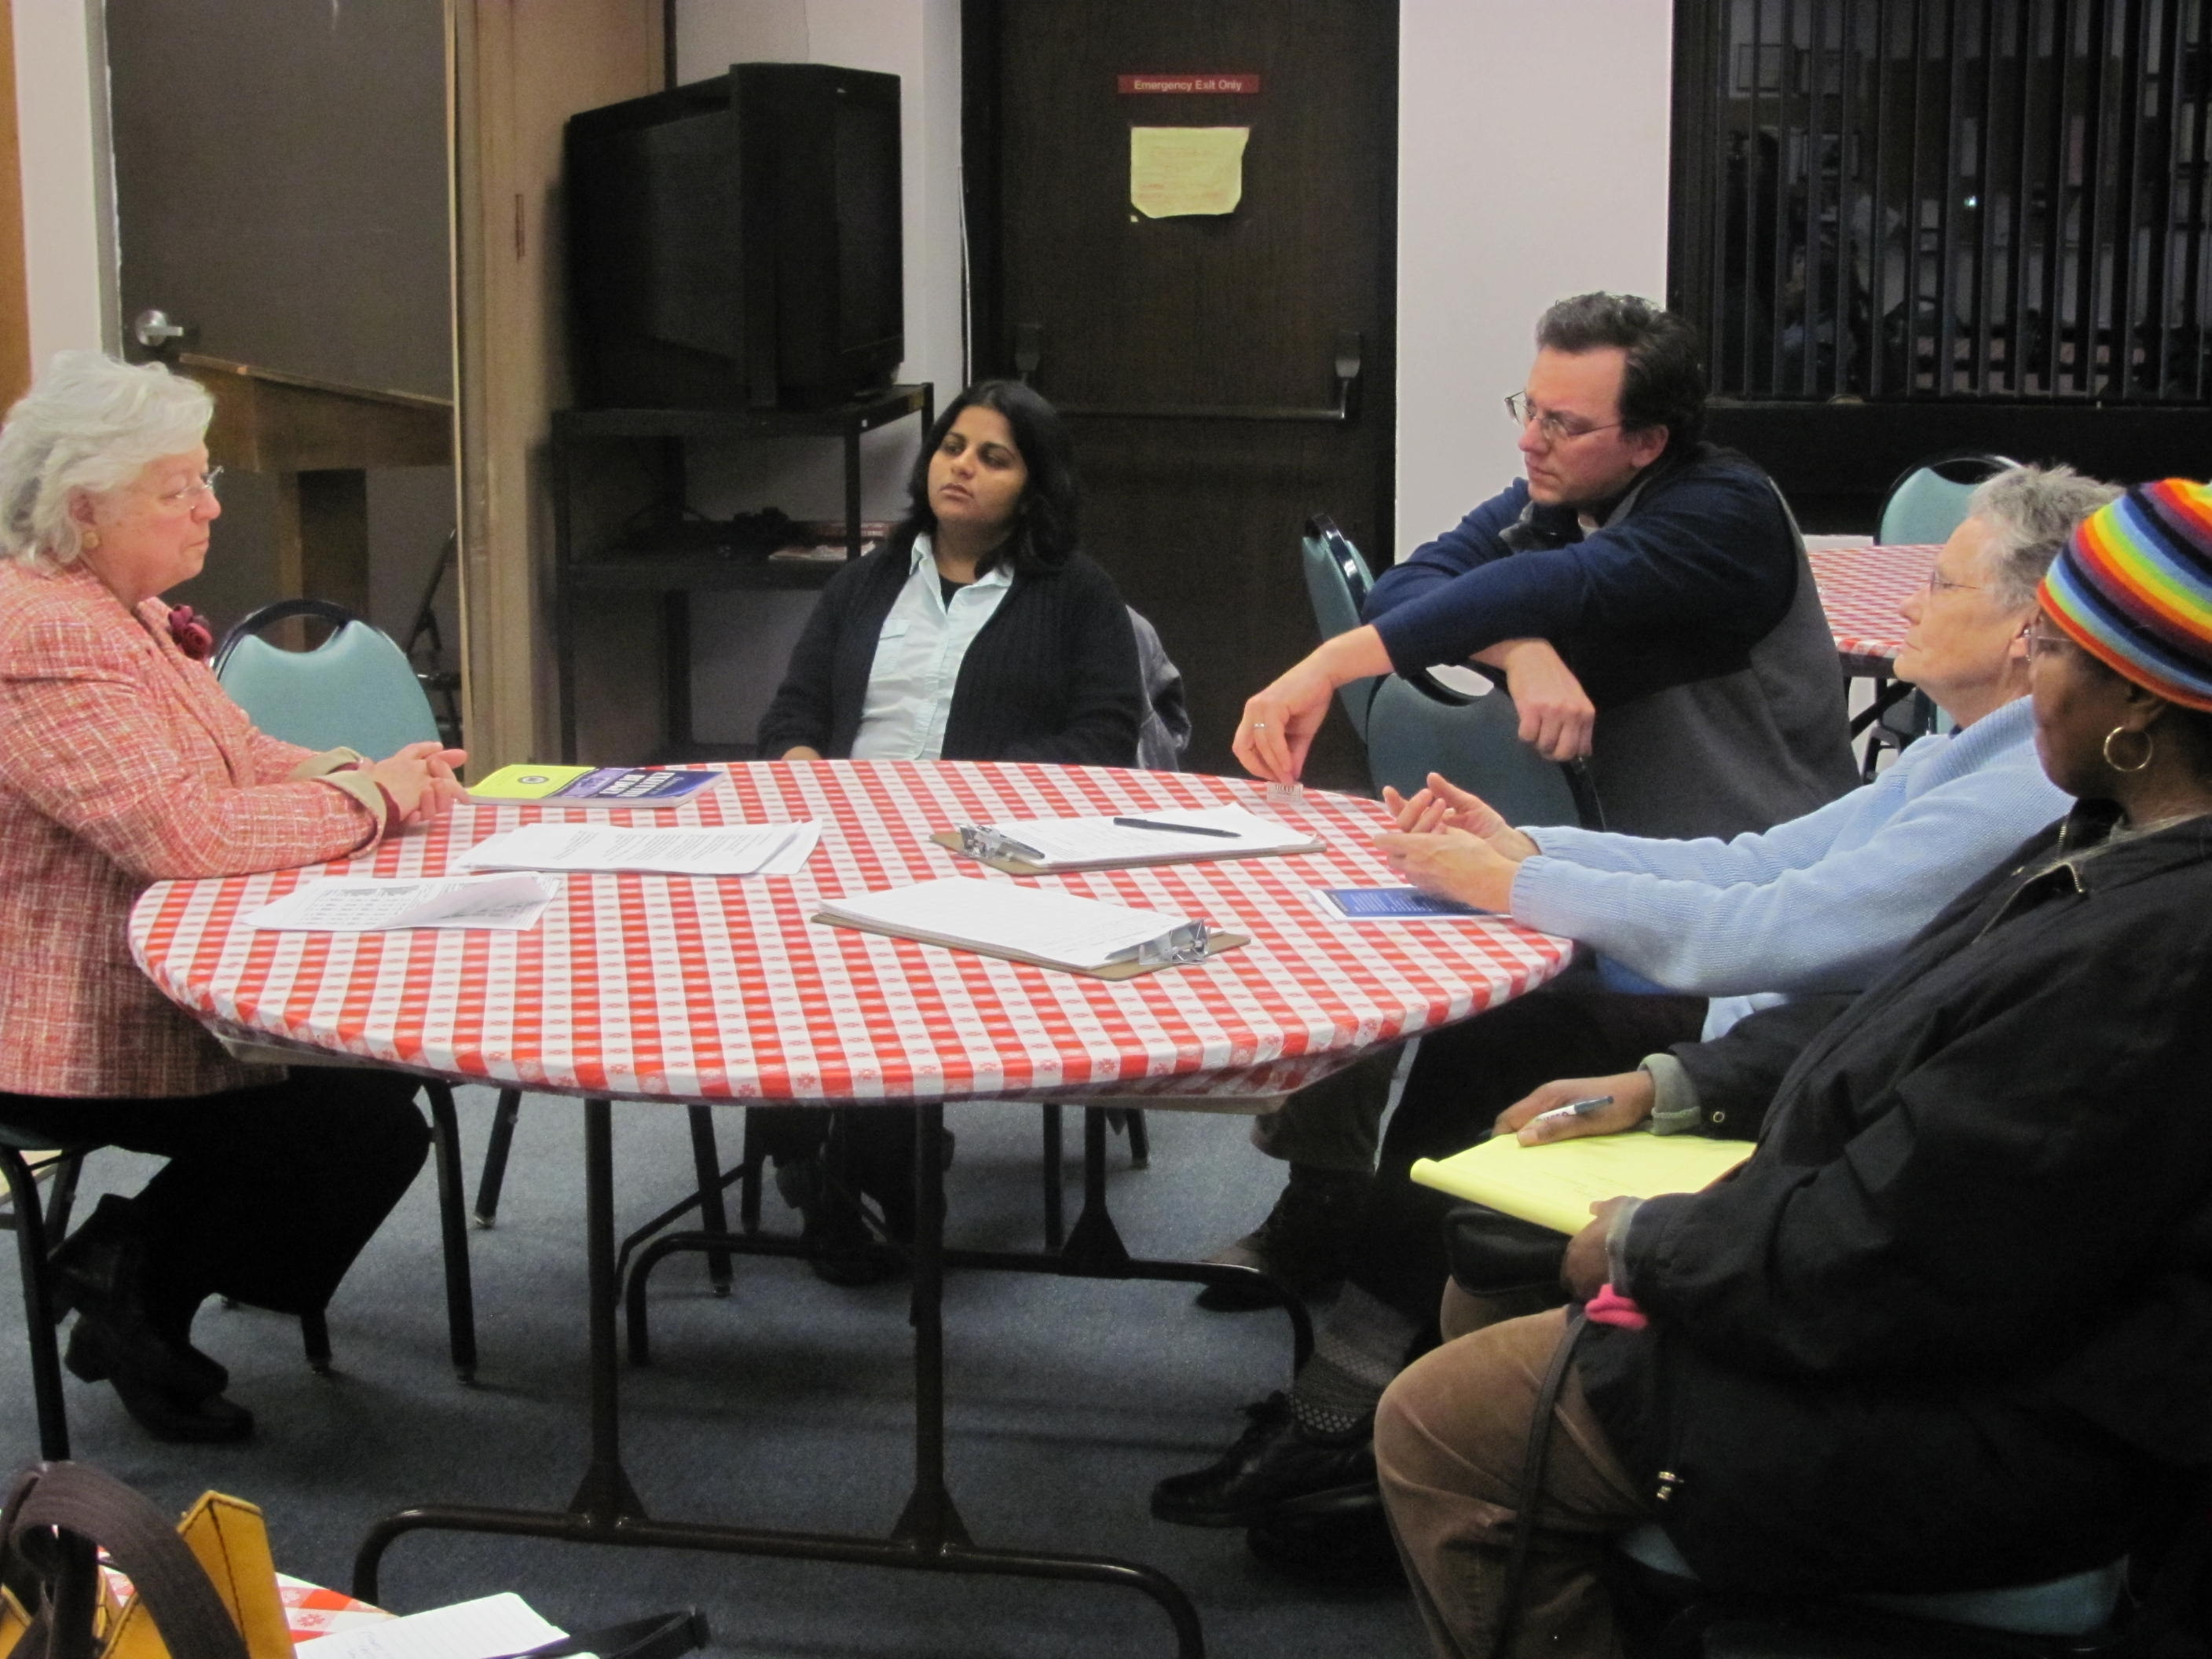 Sandy met with constituents in Peekskill to discuss areas of concern to them.